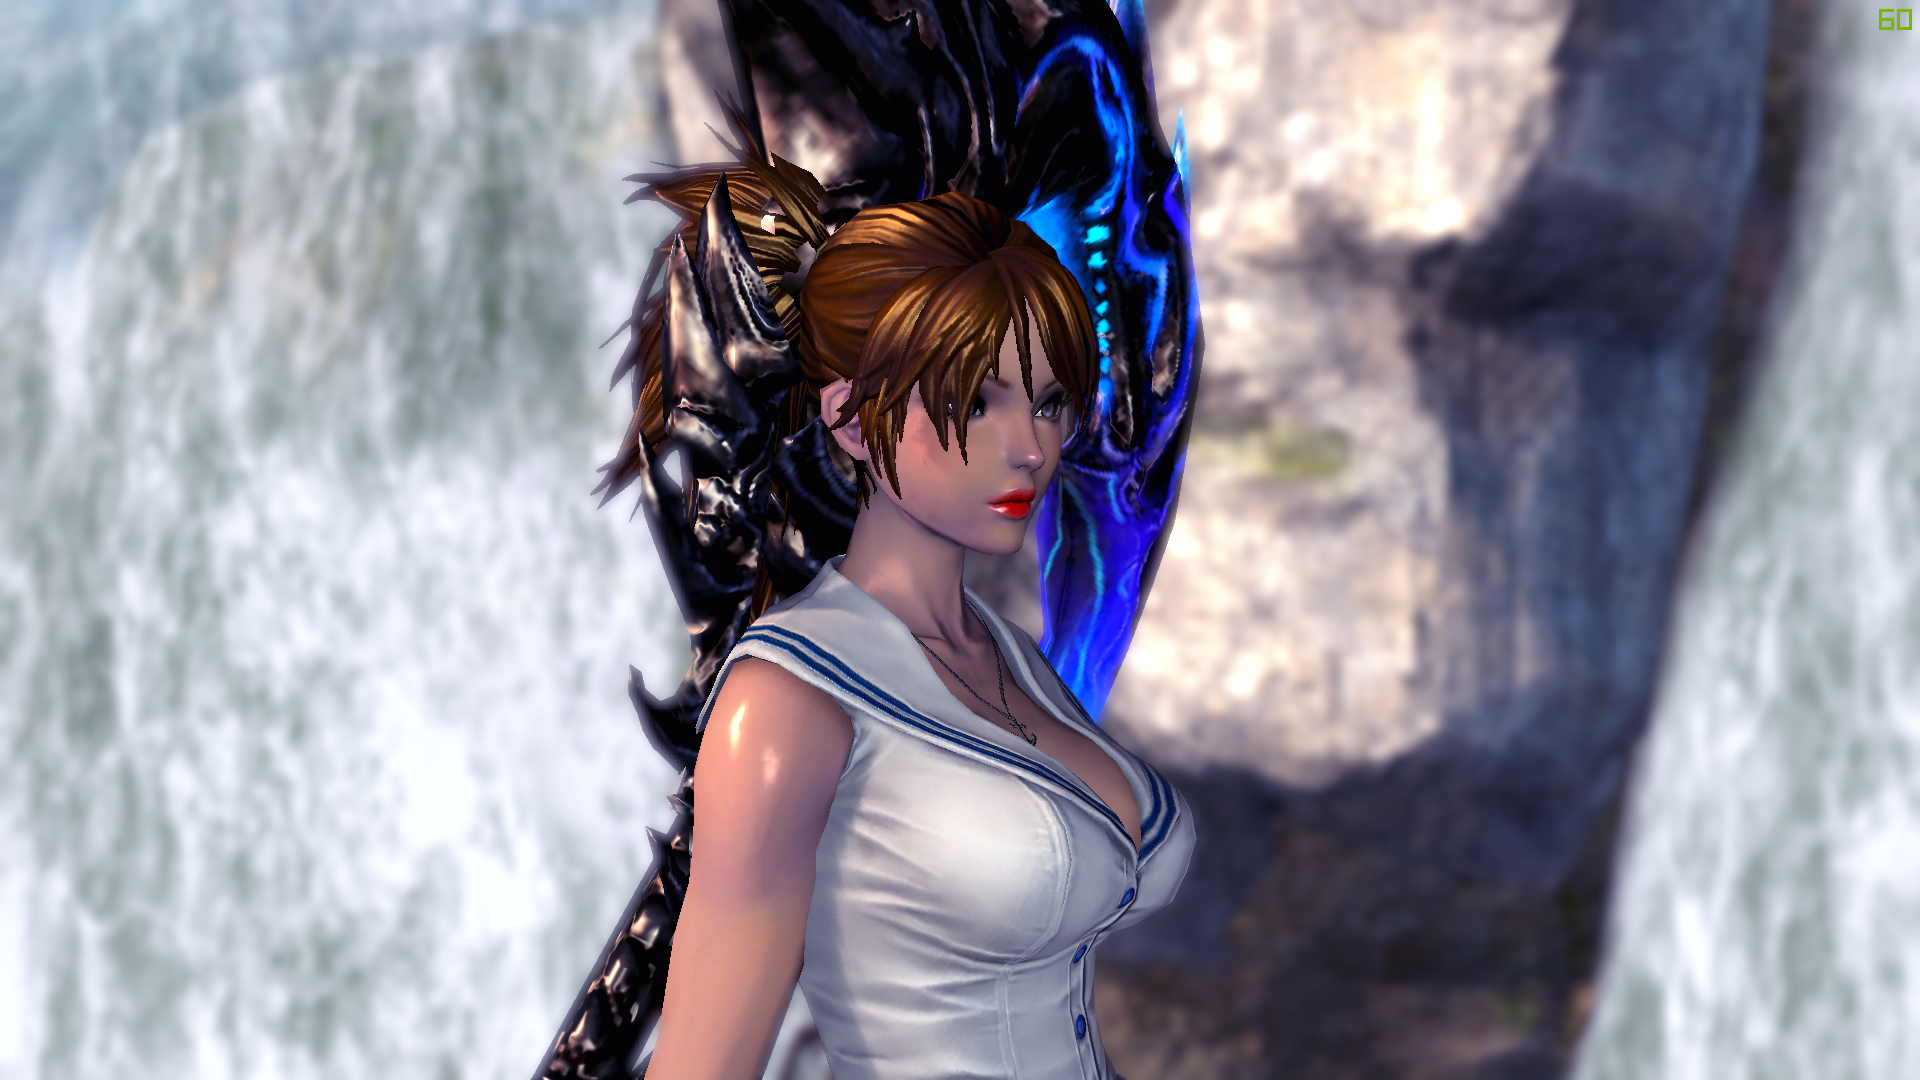 screenshot__192__by_delsabre-da3rxs2.png